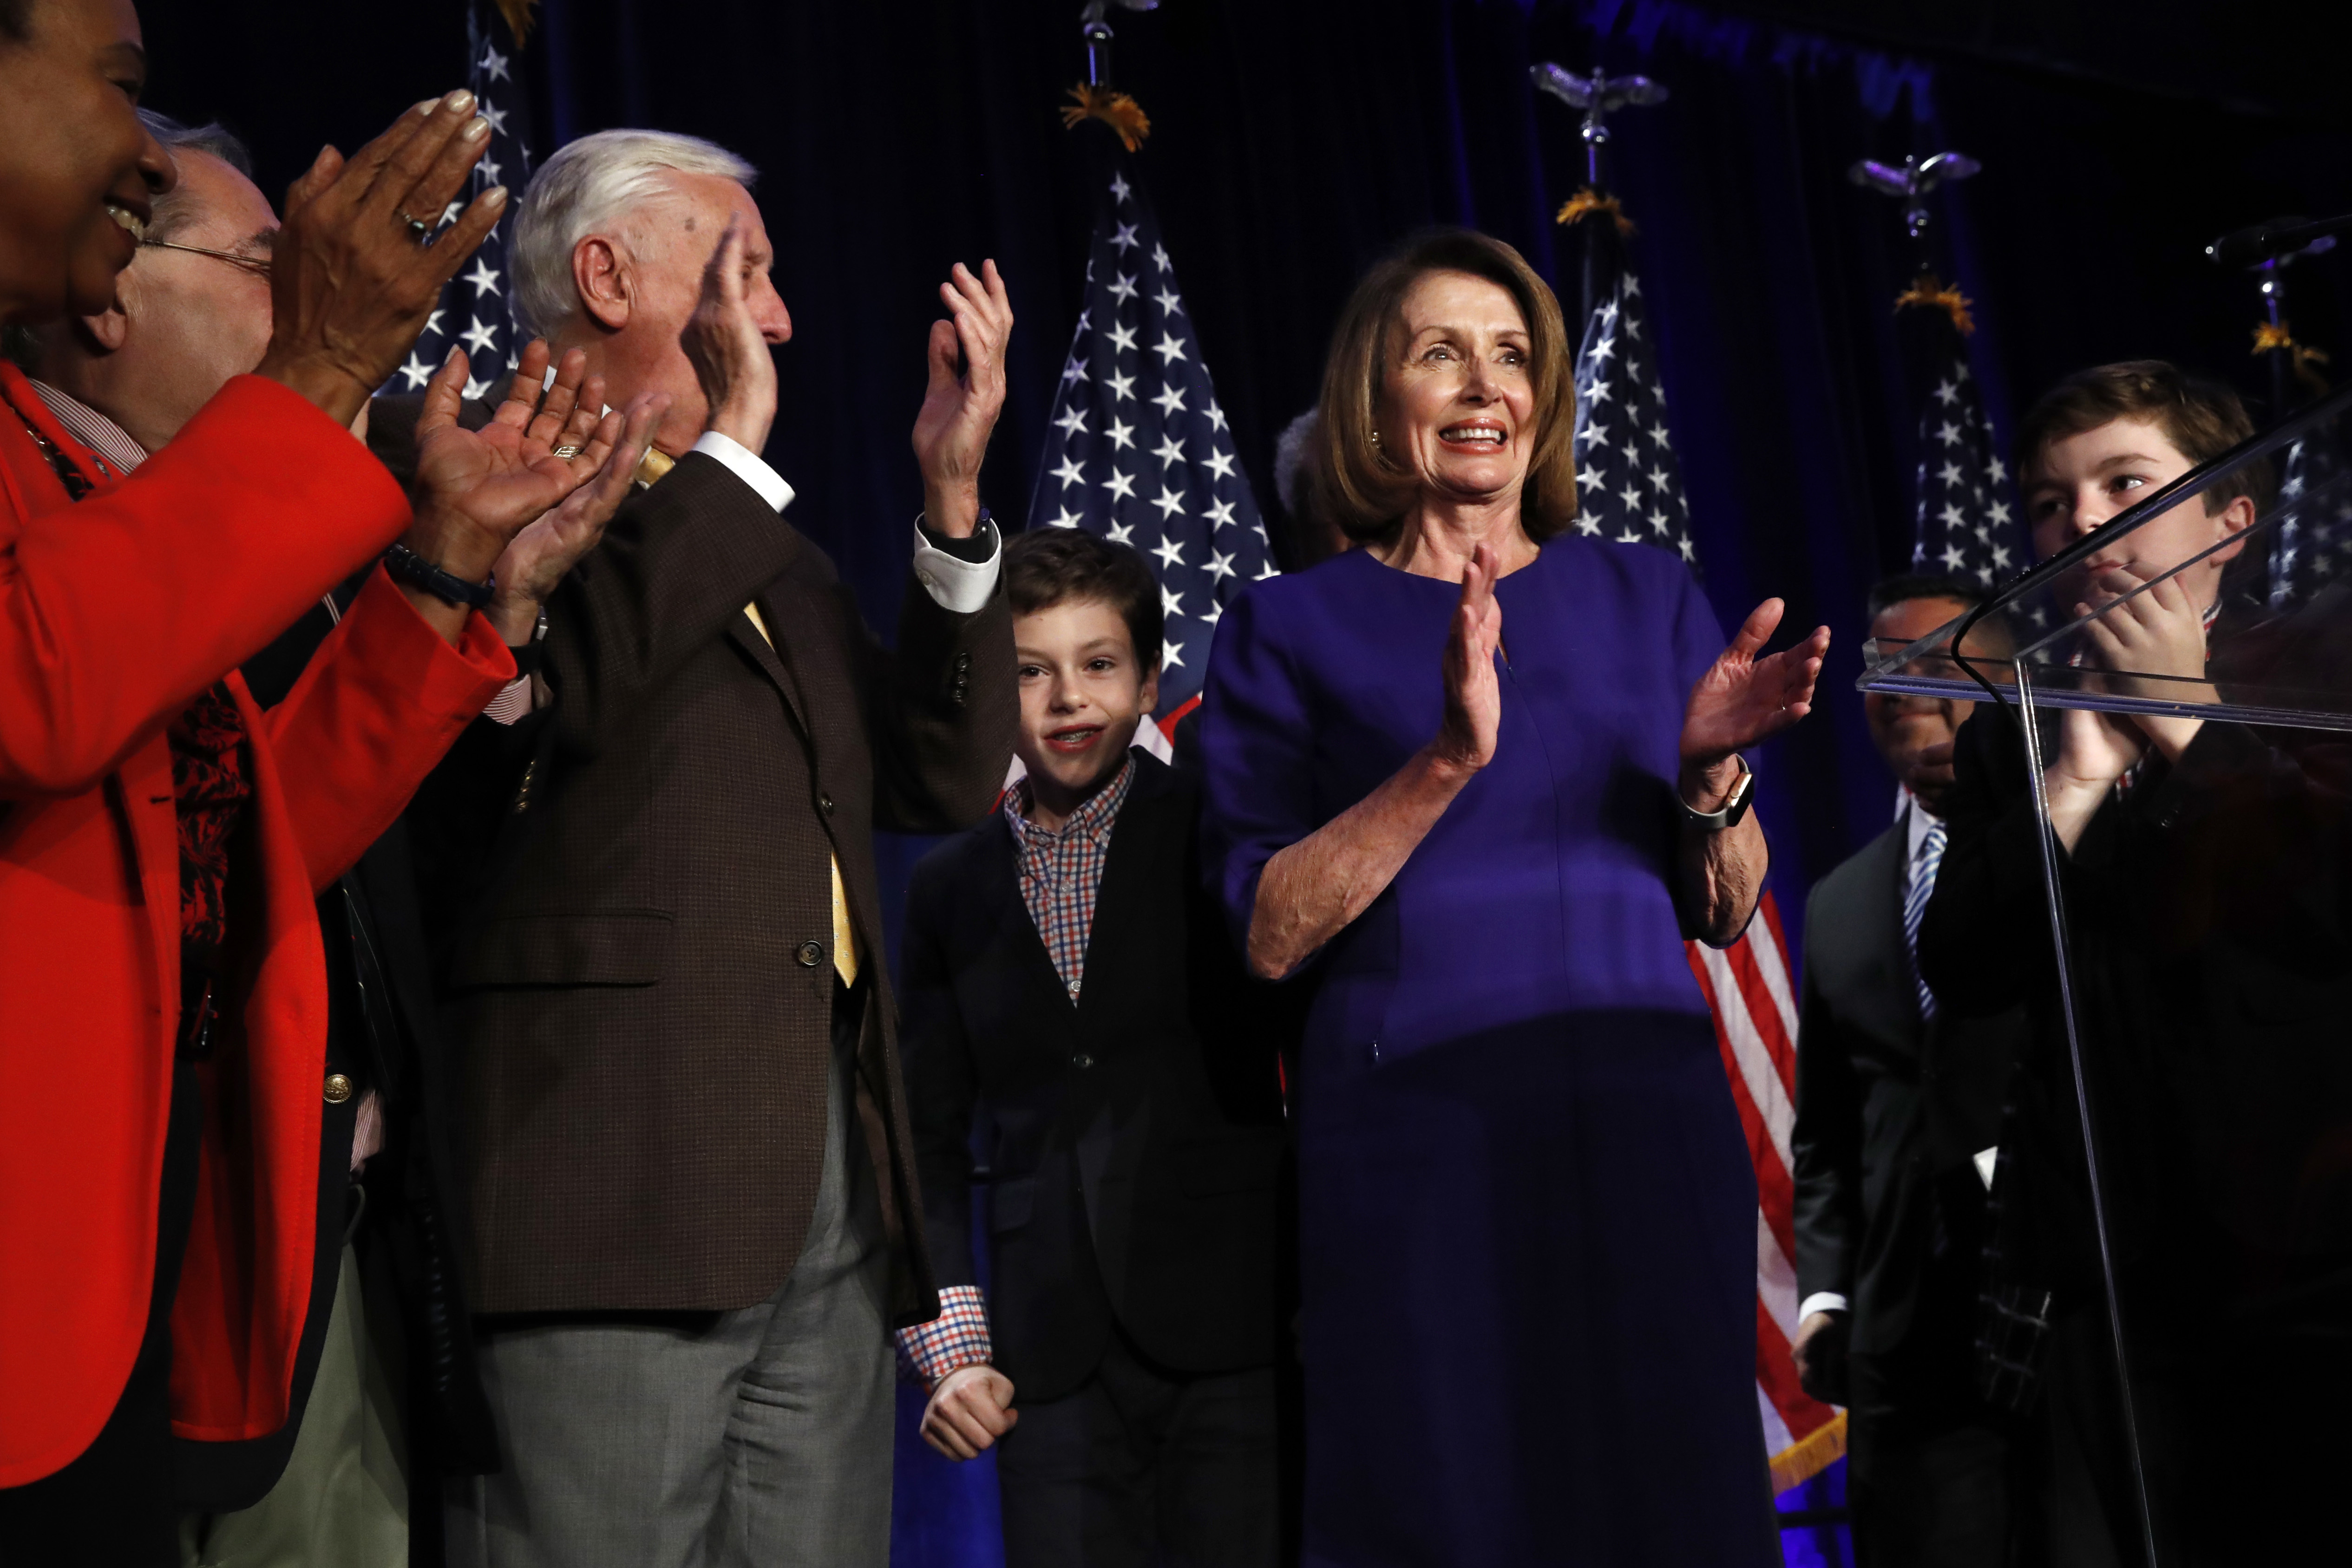 House Democratic Leader Nancy Pelosi of Calif., right, claps between her two grandsons on stage with House Democrats after speaking about Democratic wins in the House of Representatives to a crowd of Democratic supporters during an election night returns event at the Hyatt Regency Hotel, on Tuesday, in Washington. (AP Photo/Jacquelyn Martin)